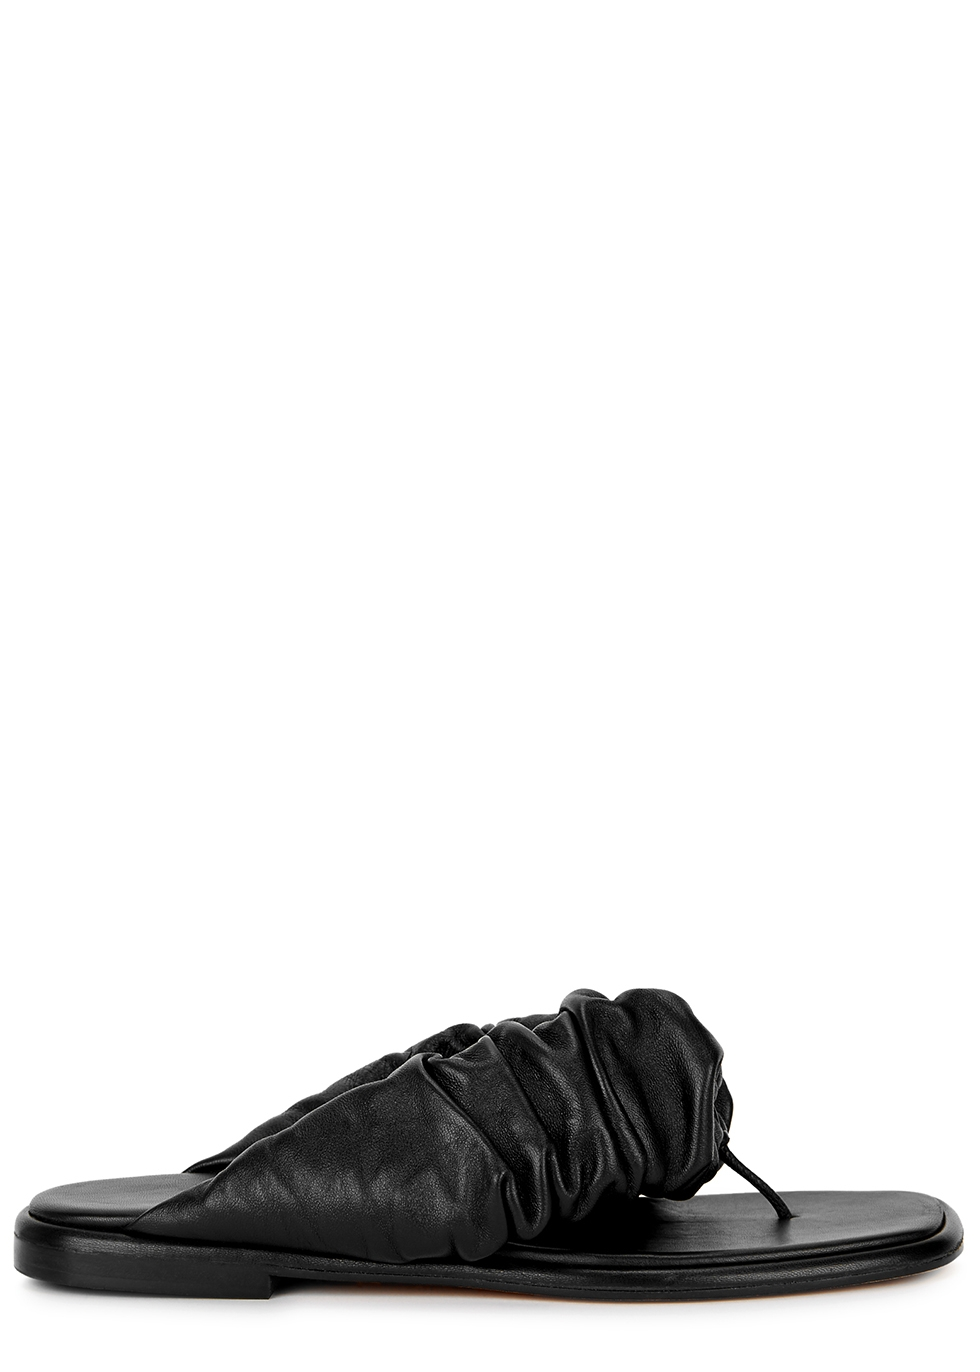 Nuvola black leather thong sandals